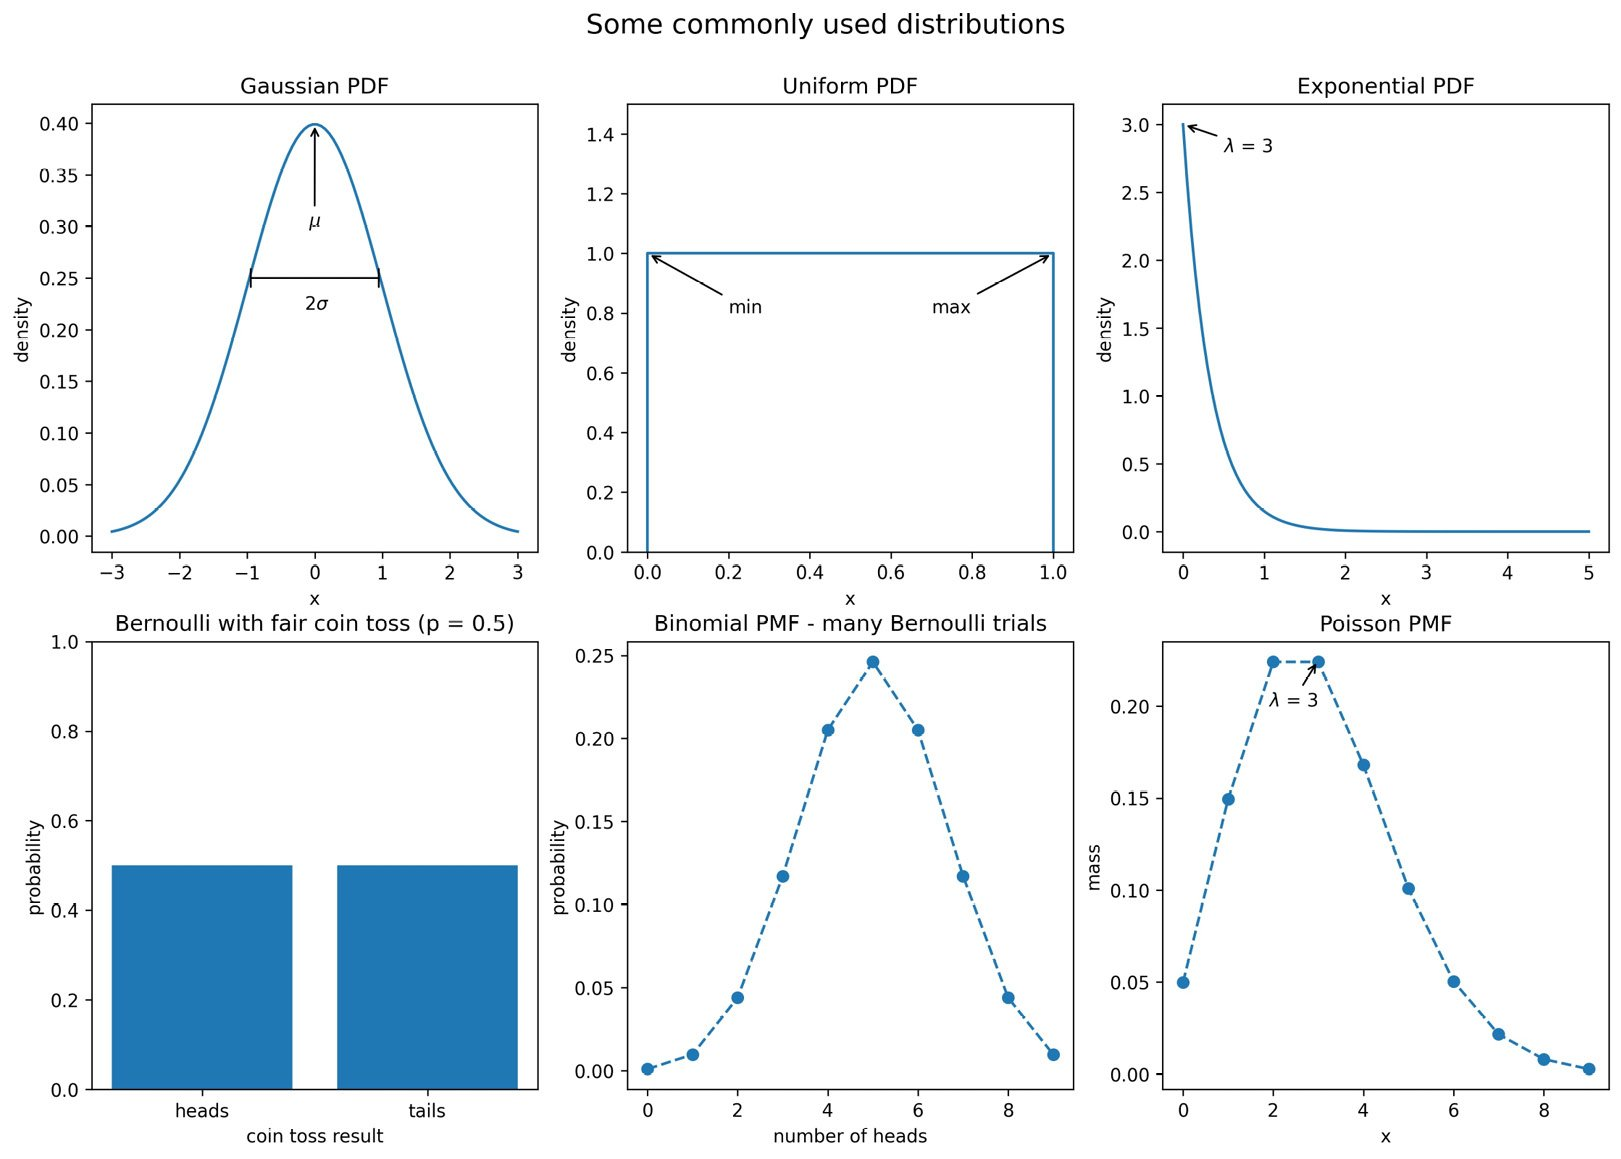 Figure 1.11 – Visualizing some commonly used distributions